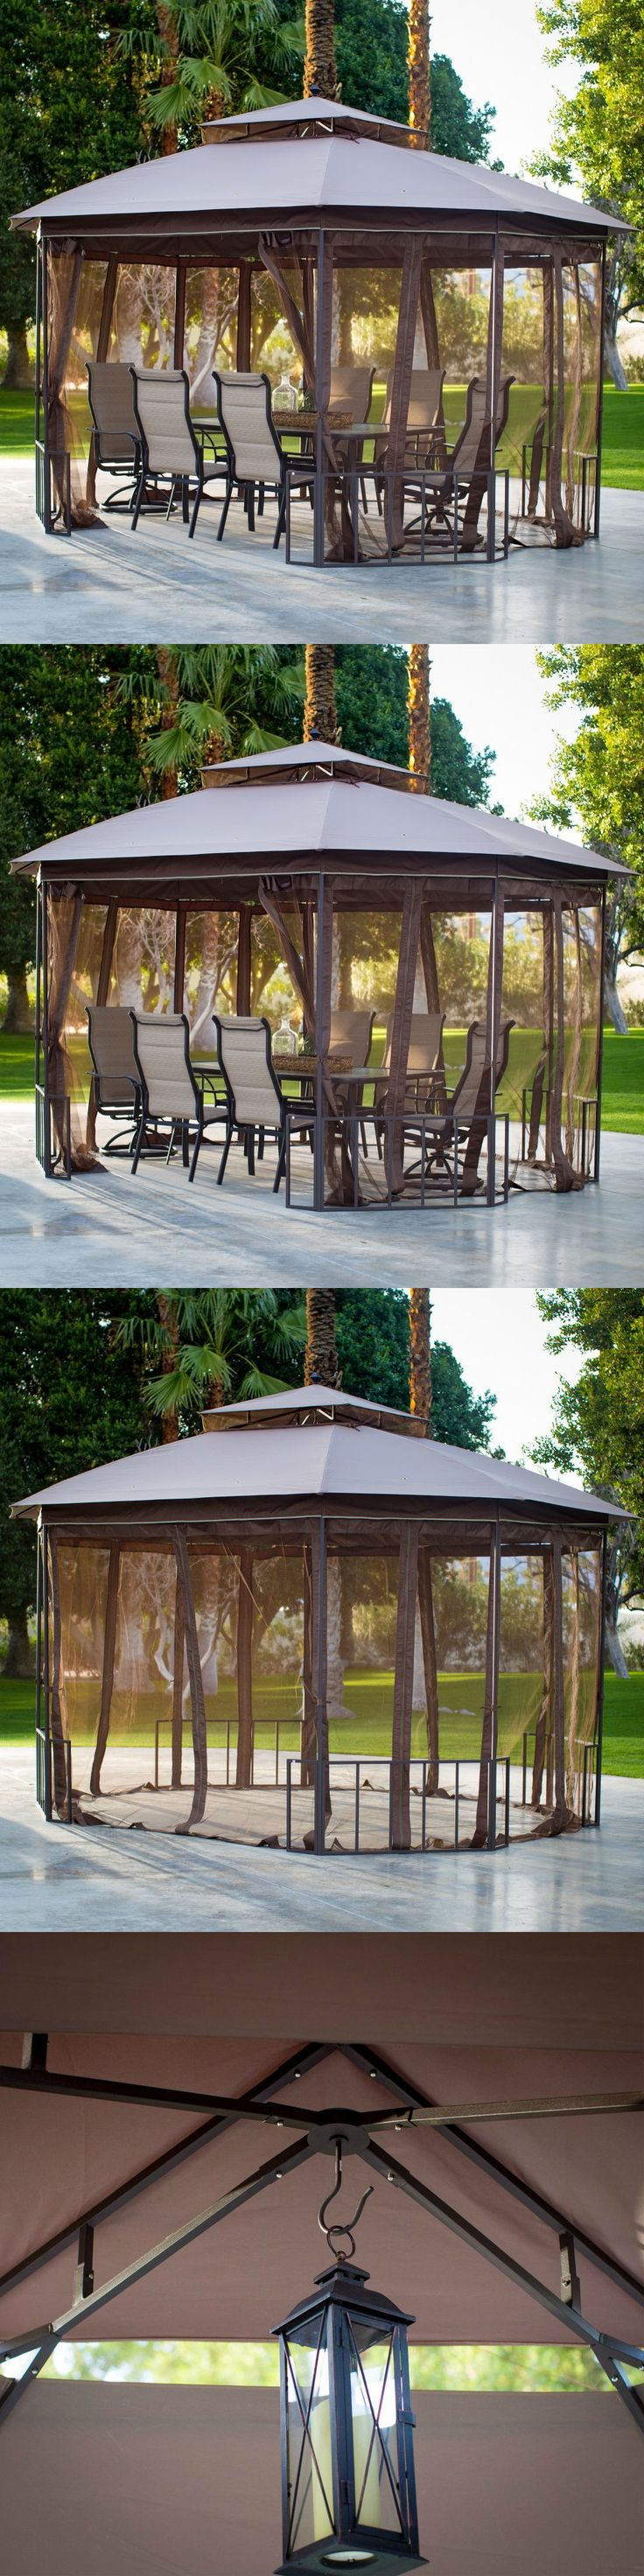 farm and garden: 10X12 Gazebo Canopy Deluxe Patio Outdoor Tent Shelter Backyard Garden Furniture -> BUY IT NOW ONLY: $279.99 on eBay!